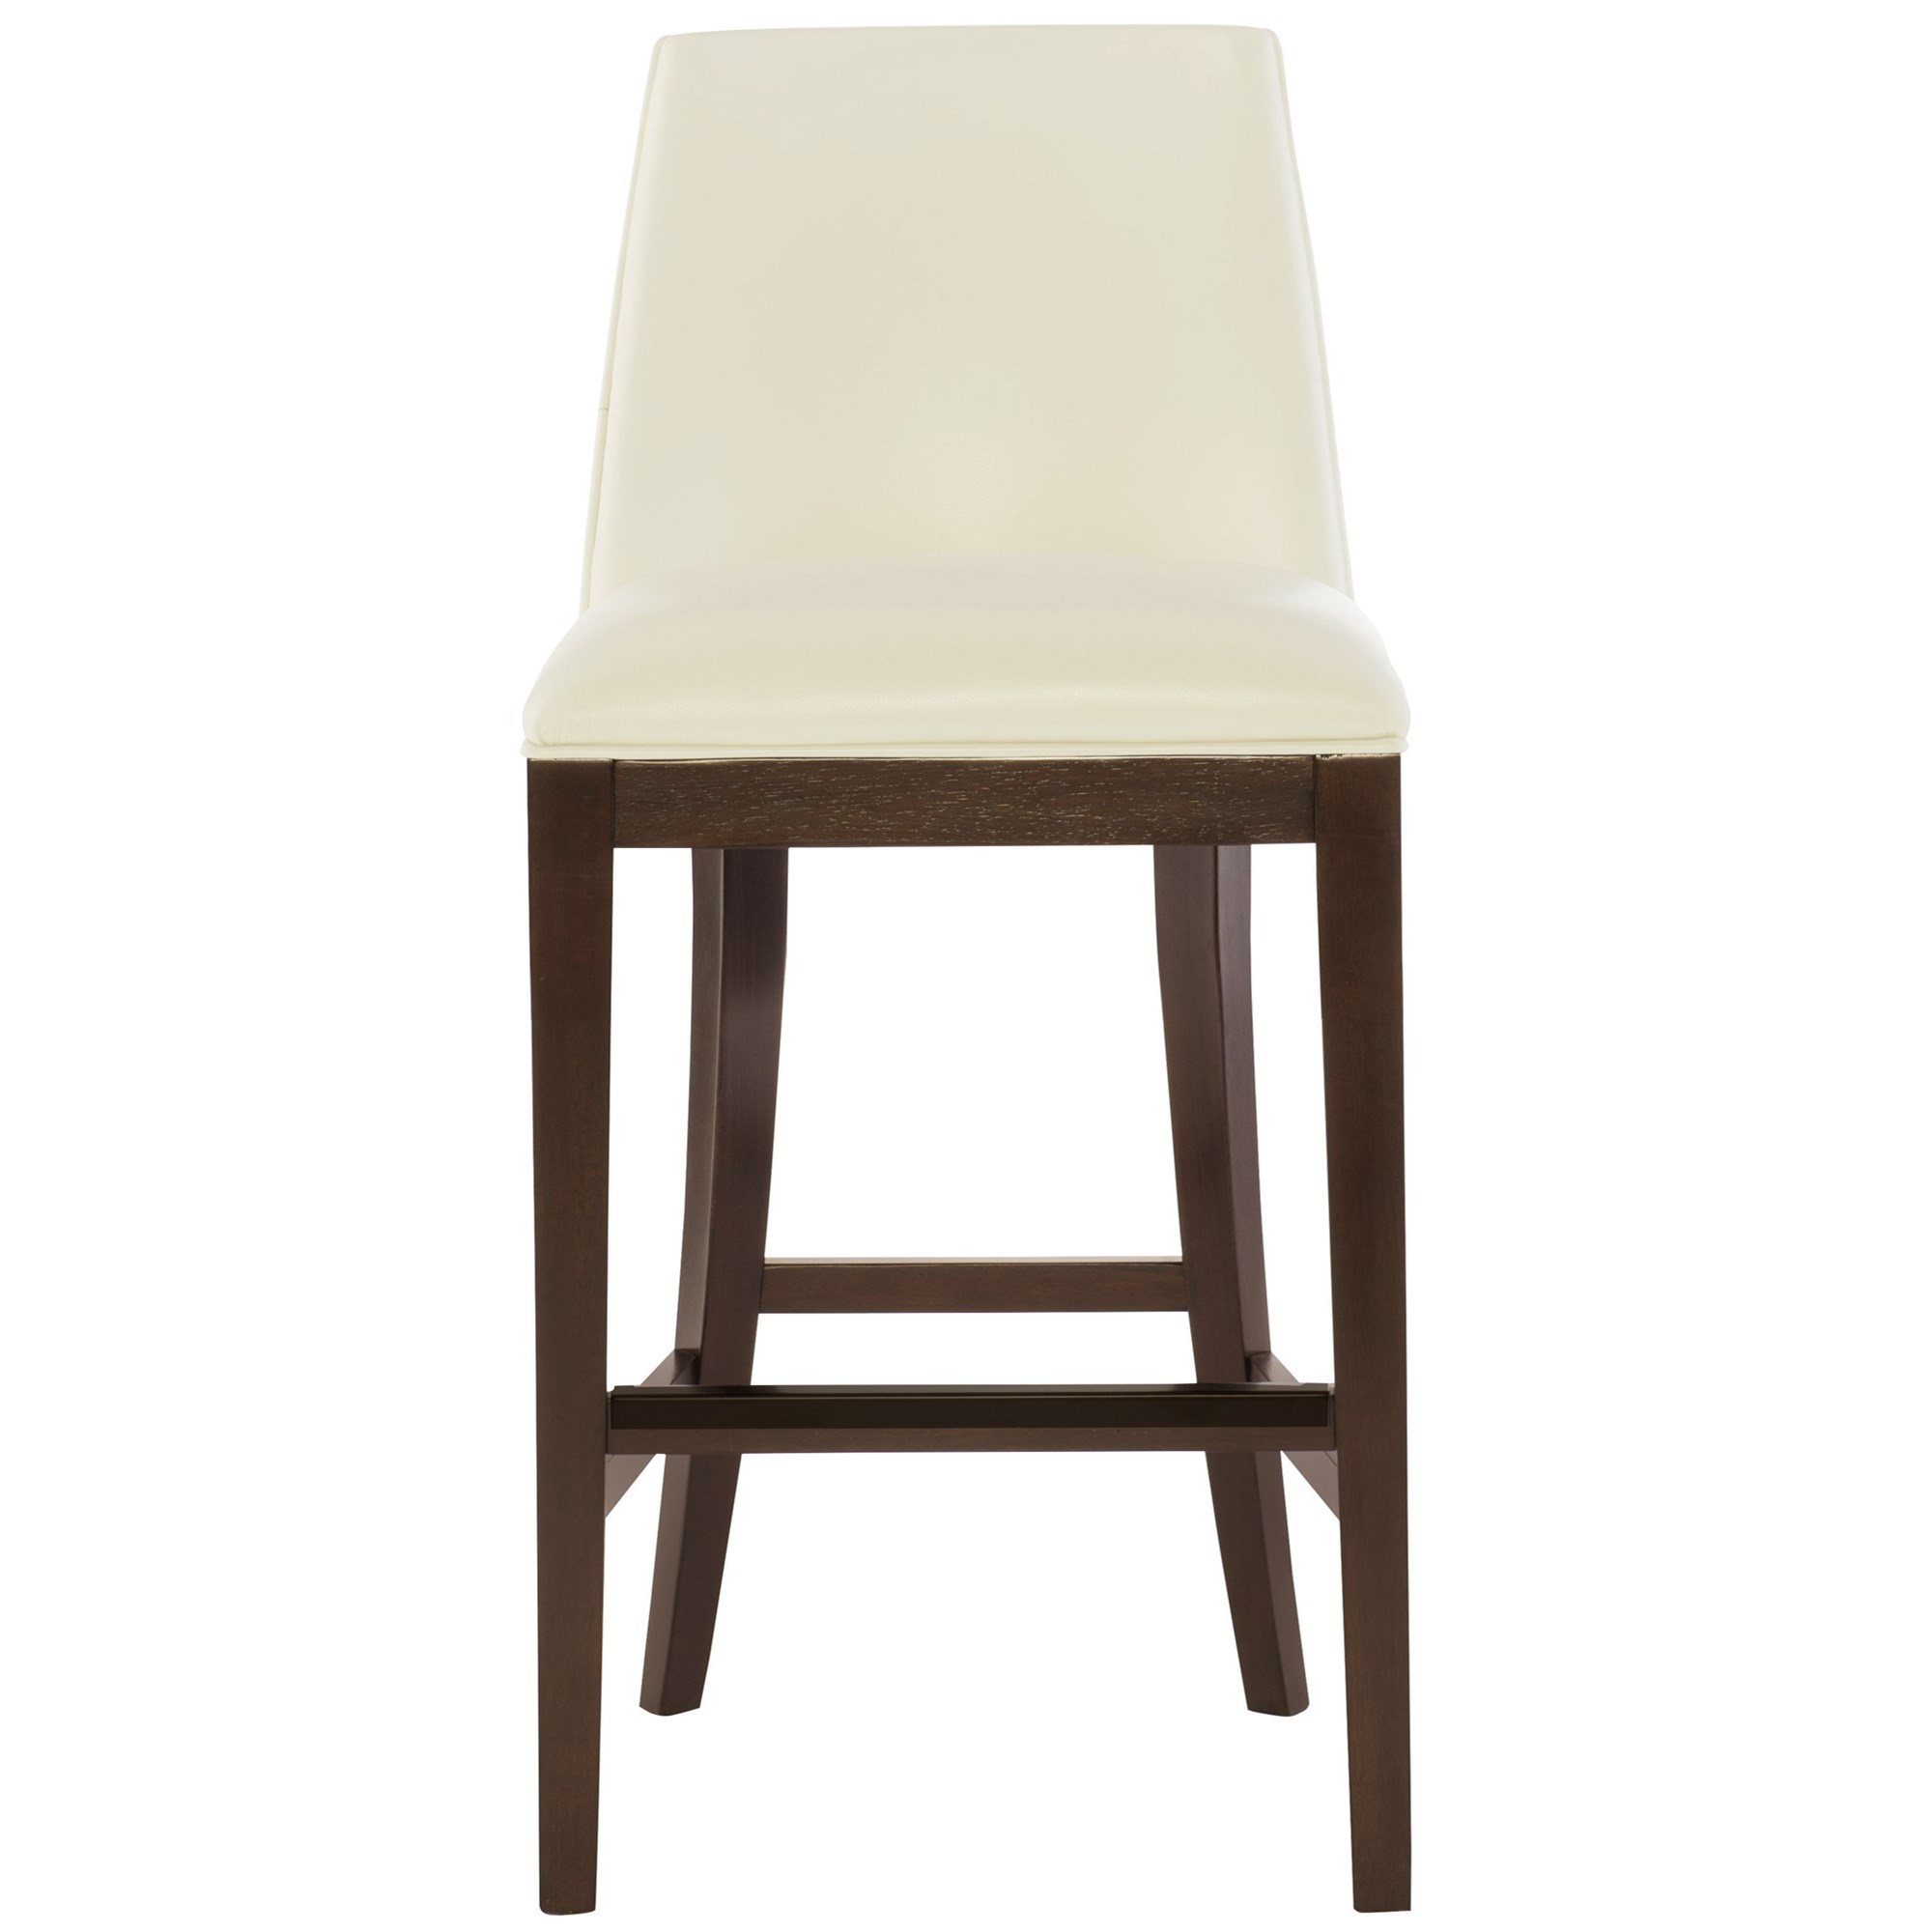 Fantastic Bernhardt Interiors Bailey Contemporary Leather Counter Gmtry Best Dining Table And Chair Ideas Images Gmtryco